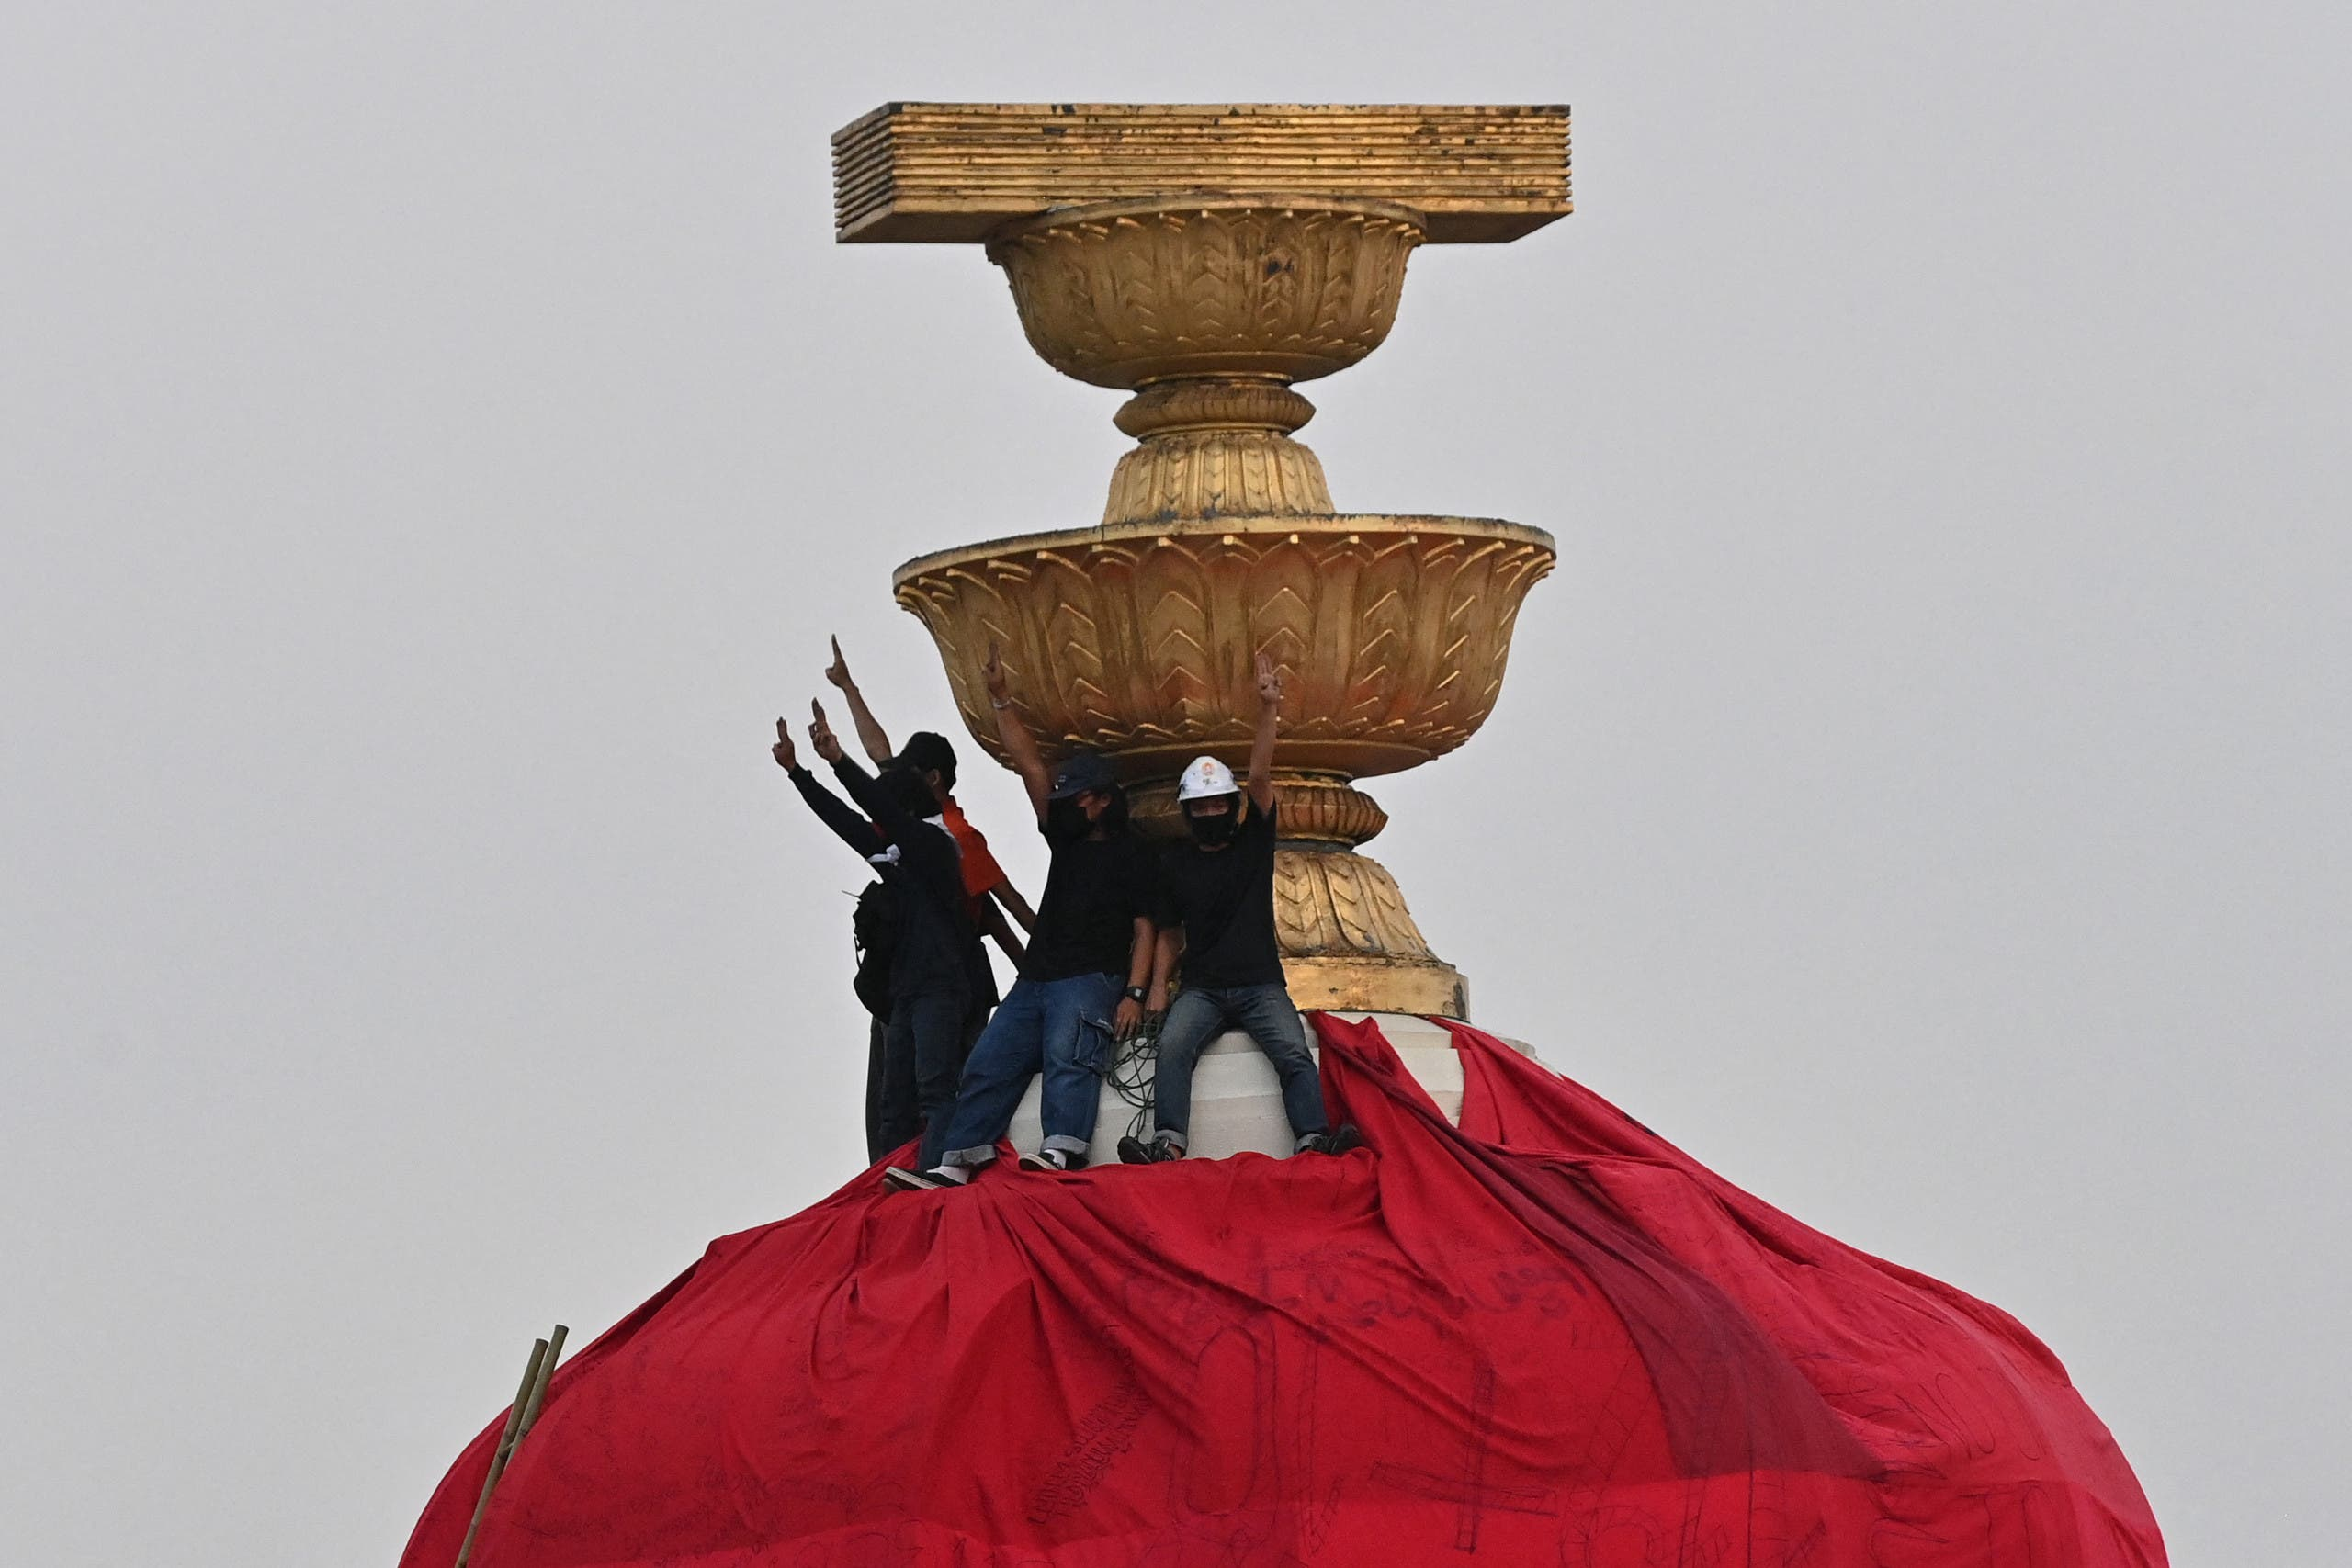 Protesters hold up the three finger salute as they wrap a part of the Democracy Monument with a large red sheet with pro-democracy messages written on it during an anti-government rally in Bangkok on February 13, 2021. (AFP)